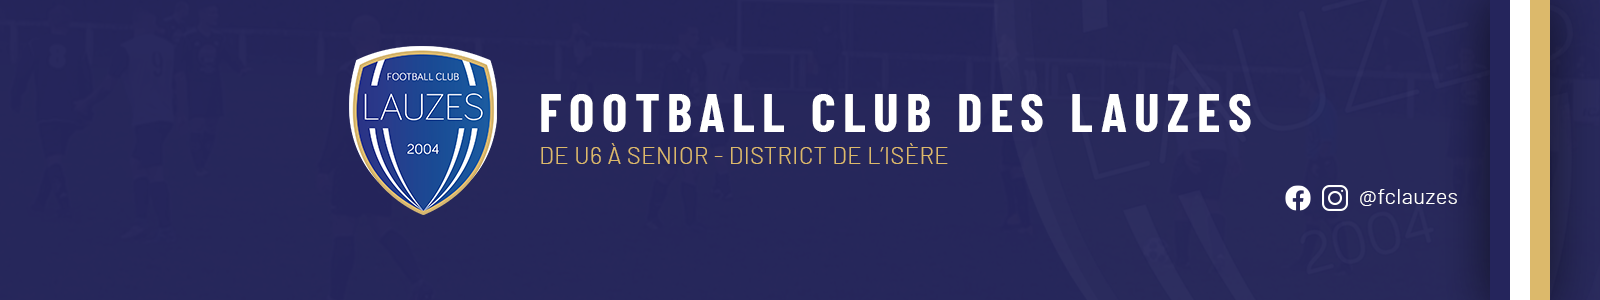 FOOTBALL CLUB DES LAUZES : site officiel du club de foot de TREPT - footeo